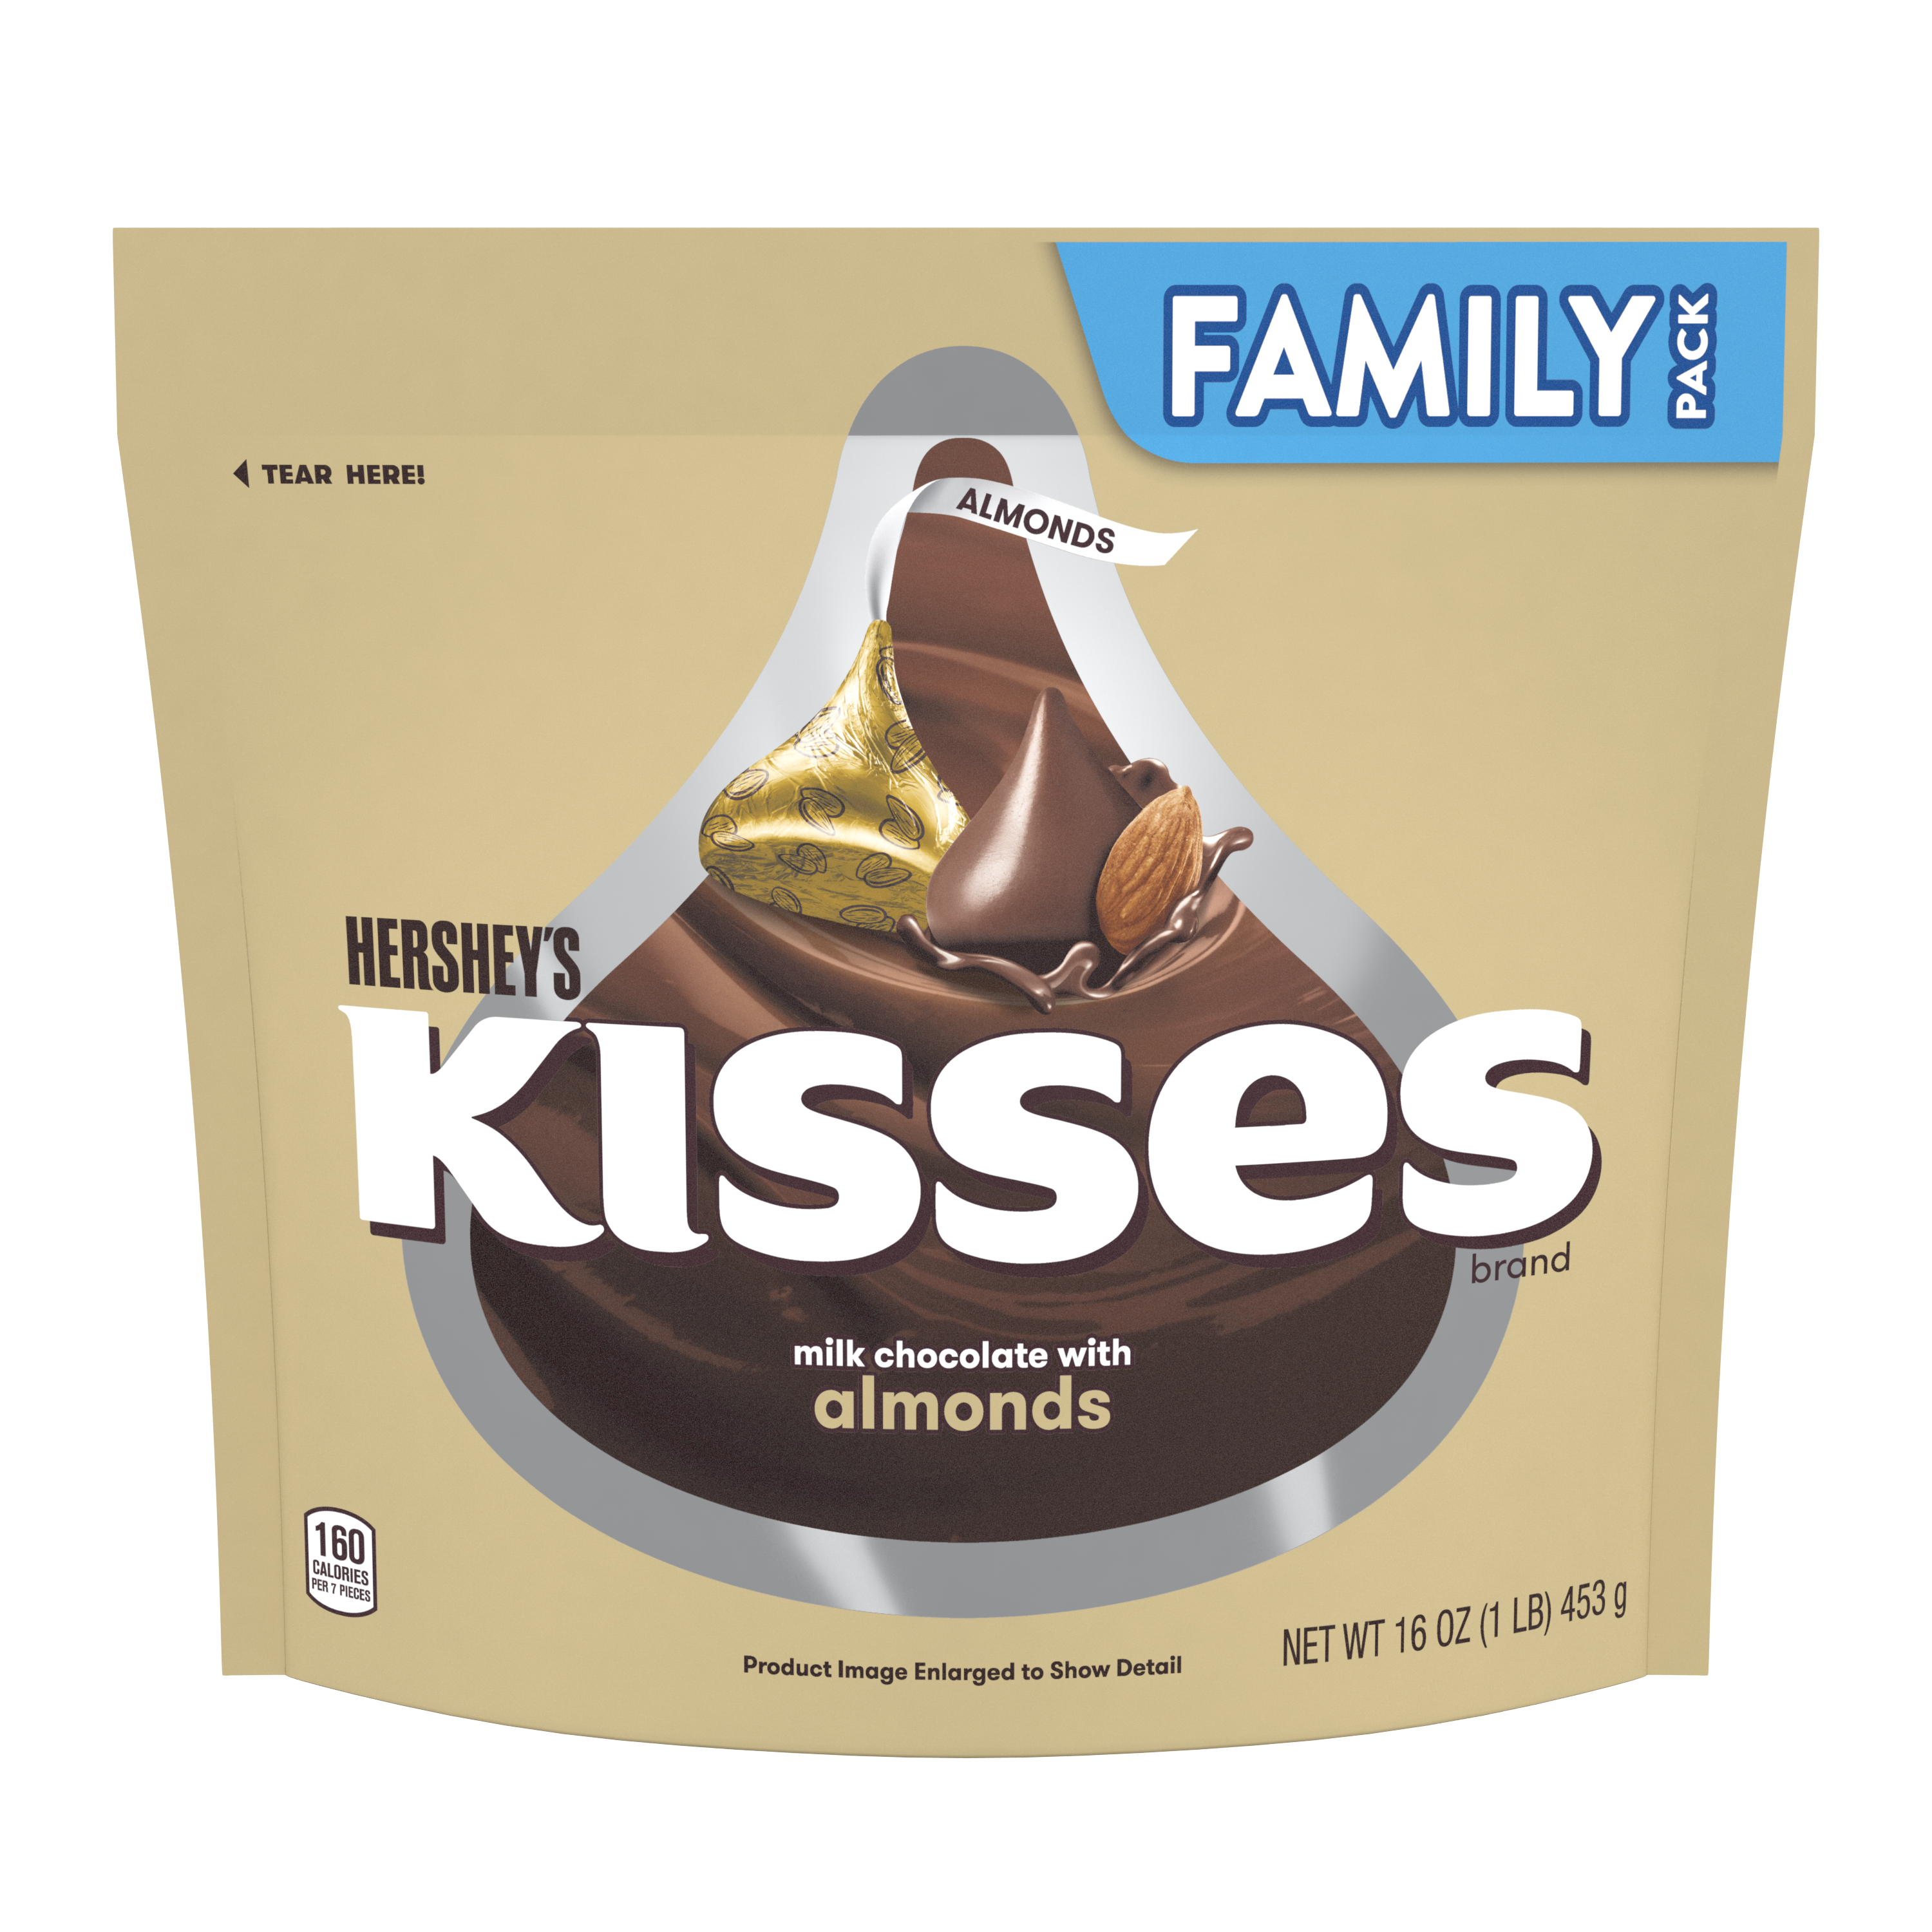 HERSHEY'S KISSES Milk Chocolate with Almonds Candy, 16 oz pack - Front of Package